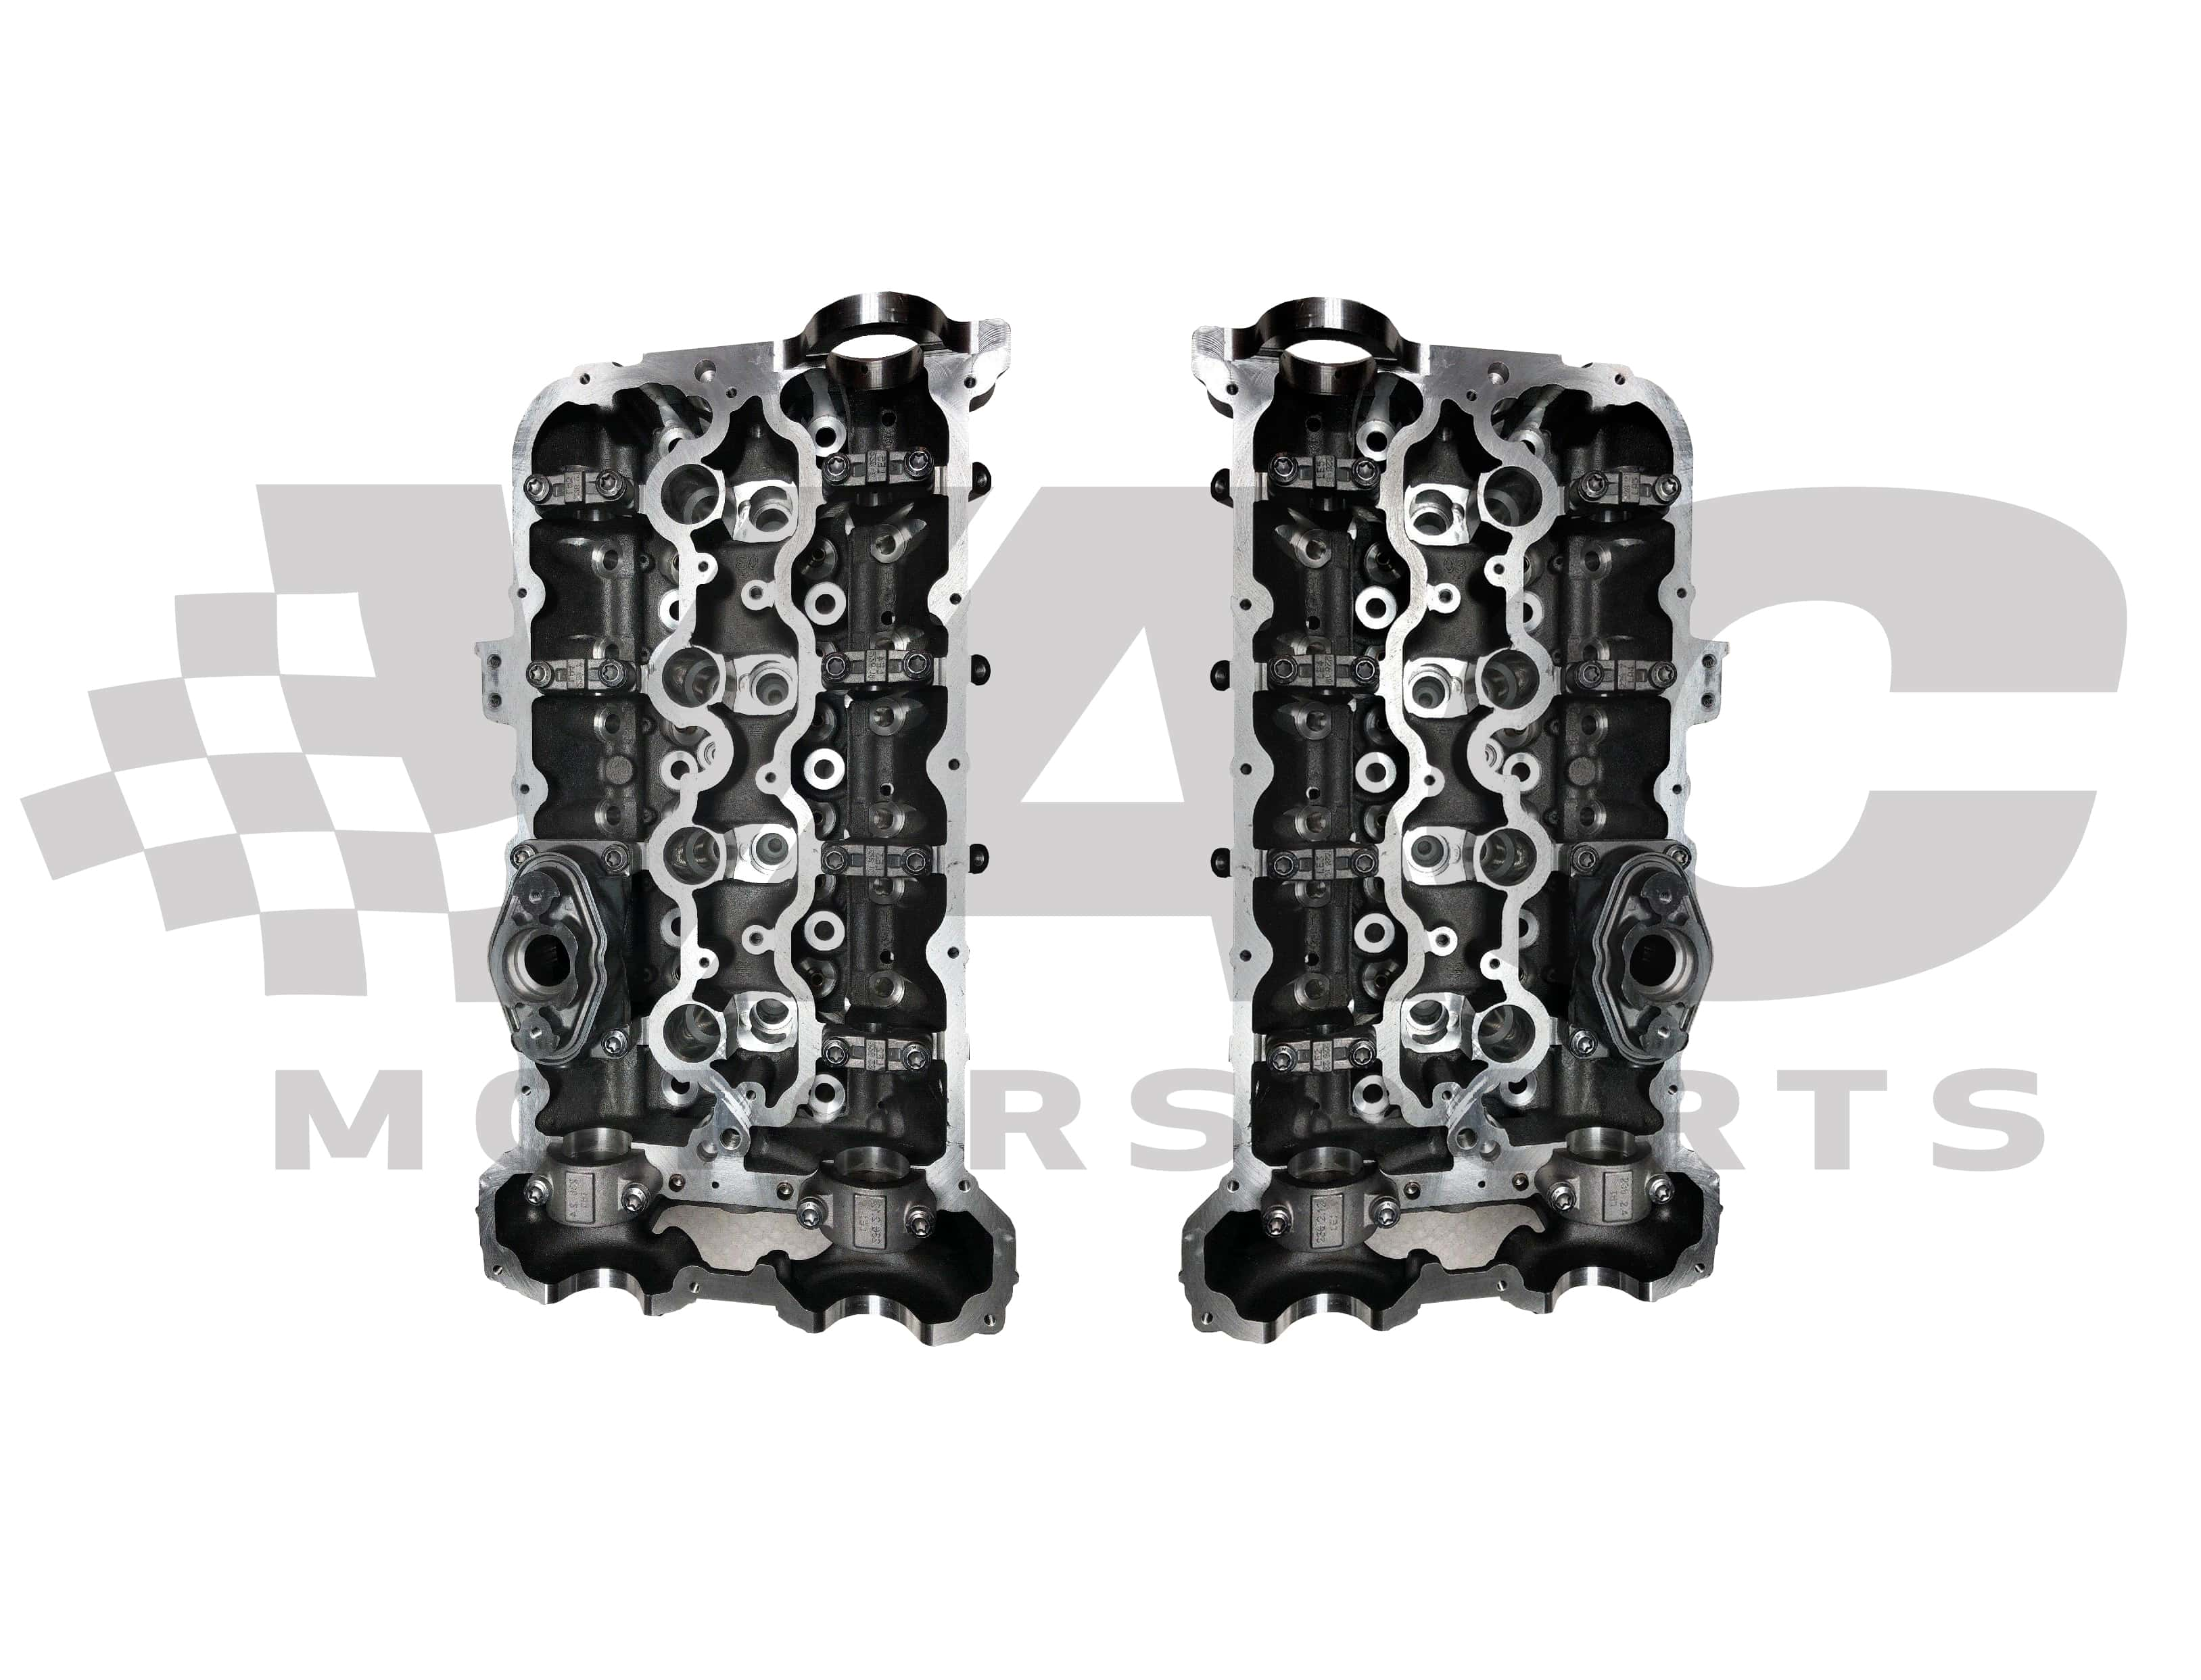 VAC - S63 Stage 1 Performance Cylinder Head THUMBNAIL